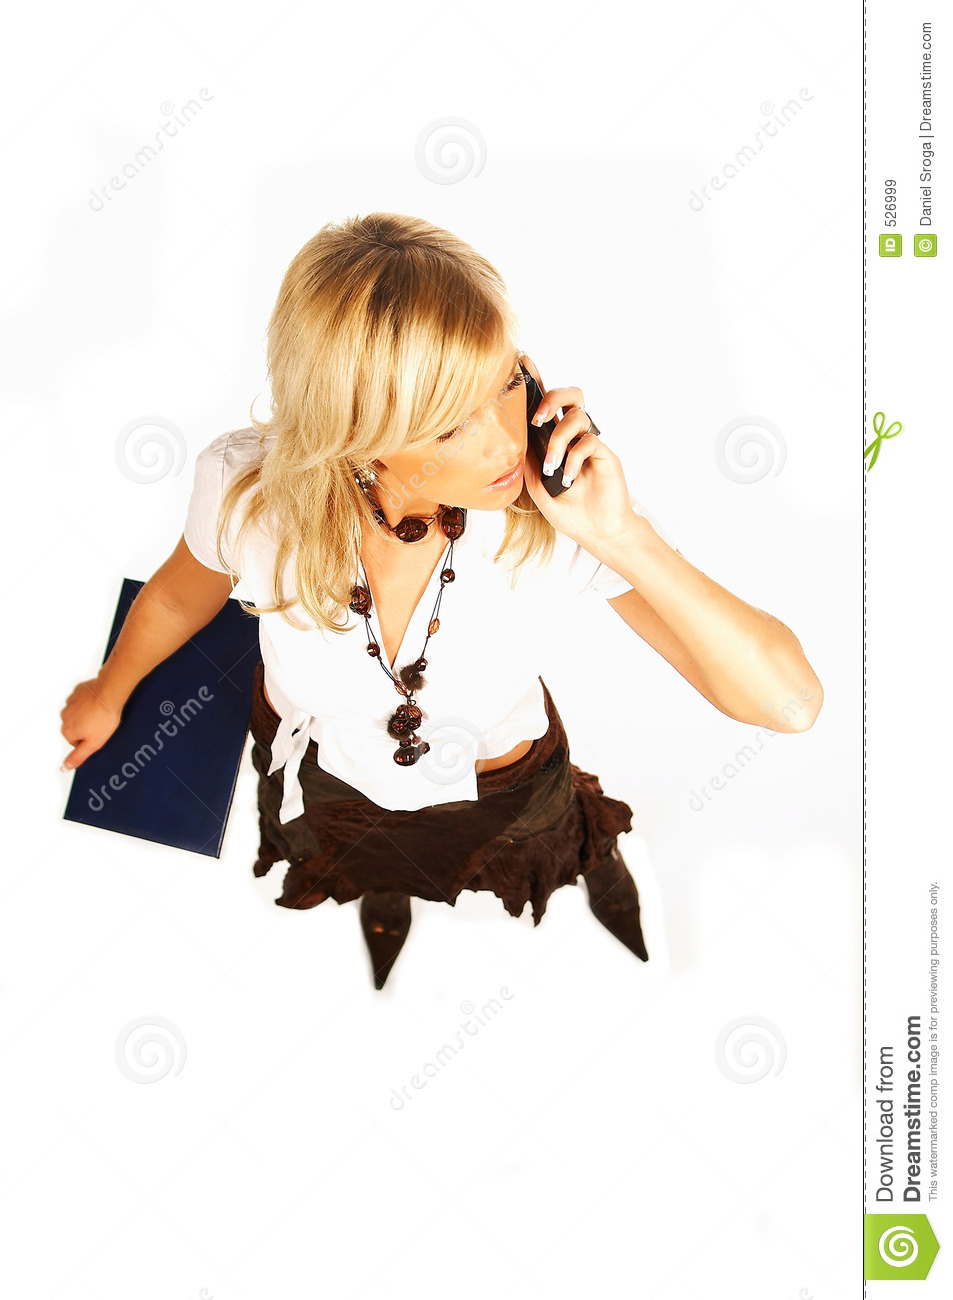 Blonde Girl With Cell Phone Stock Photo - Image of